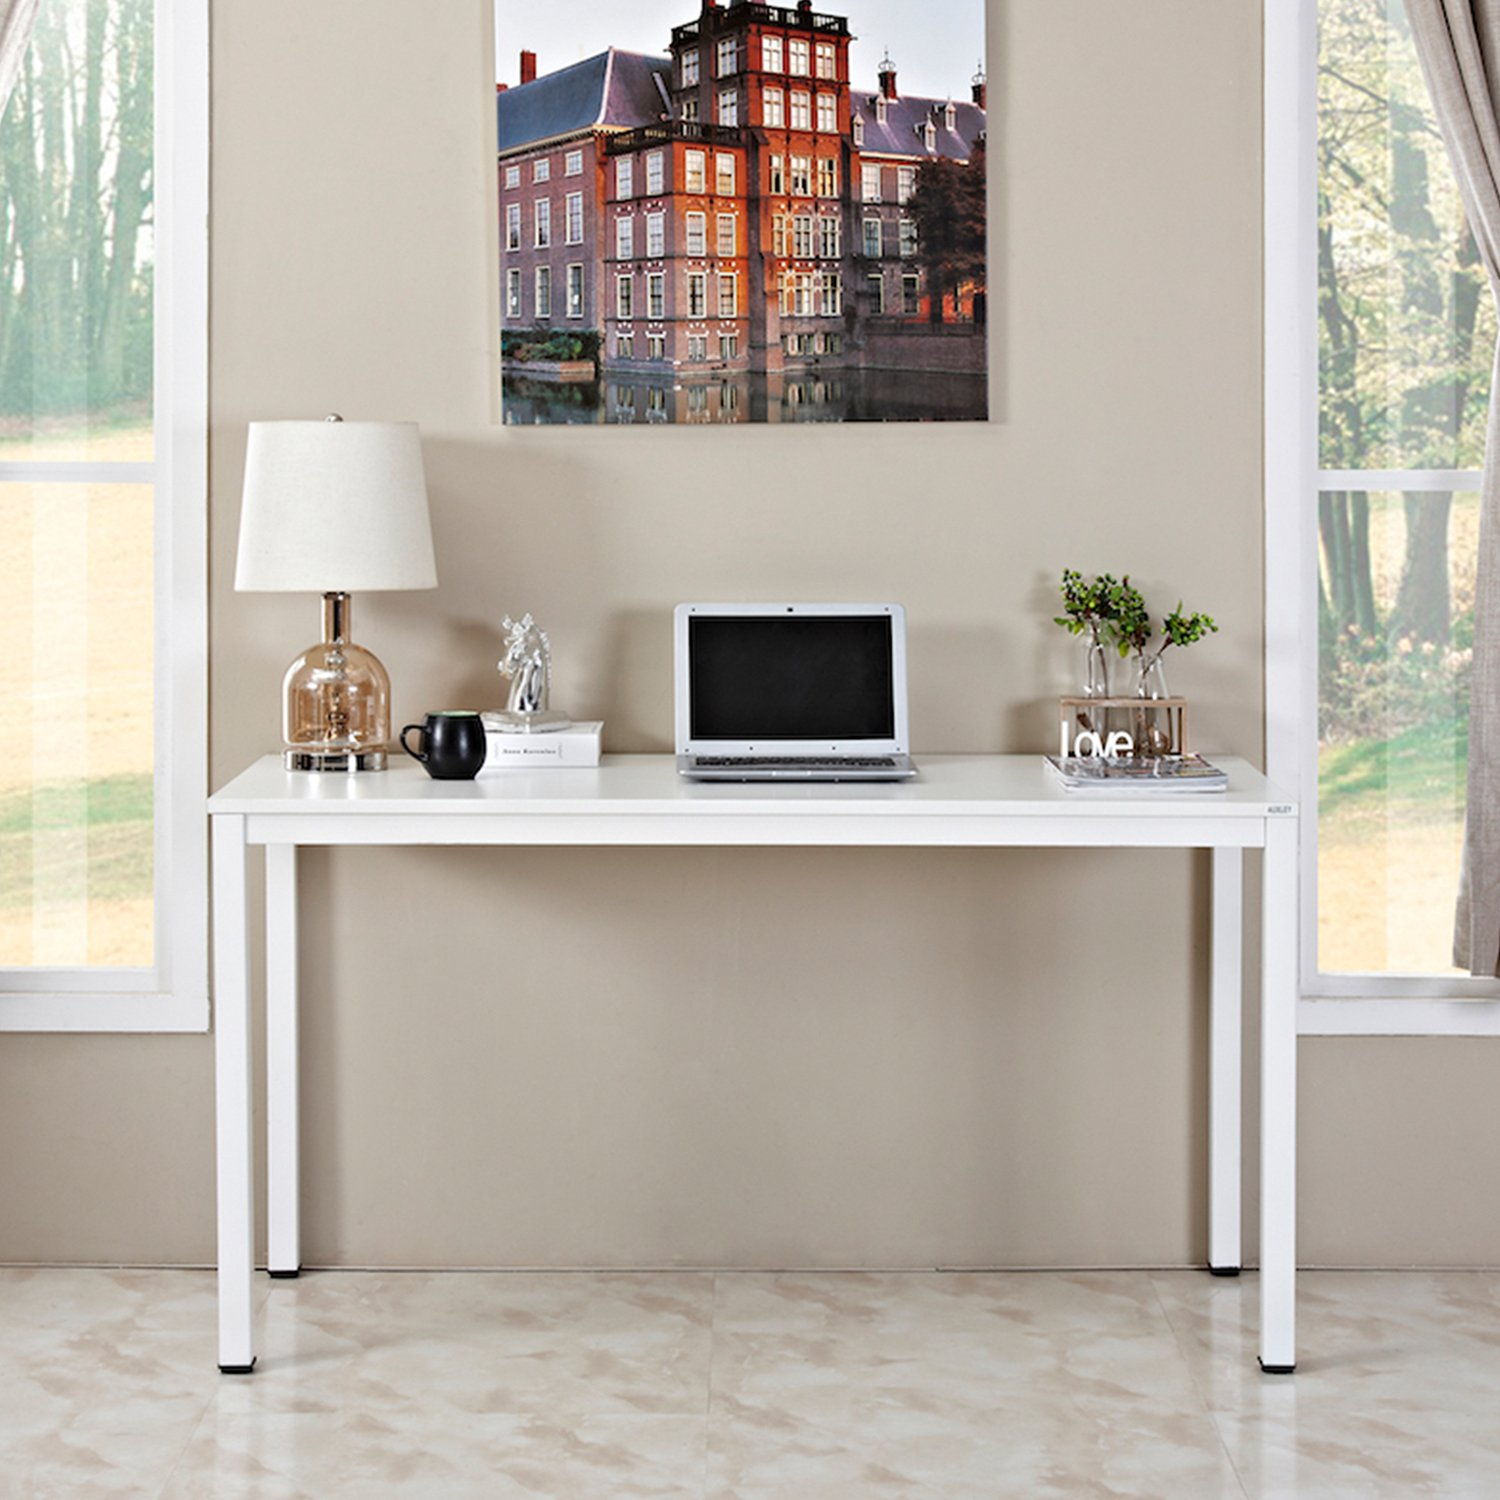 Auxley Computer 55 Inch Modern Simple Writing Desk for Home Double Deck Wood and Metal Office Table, 55 , White